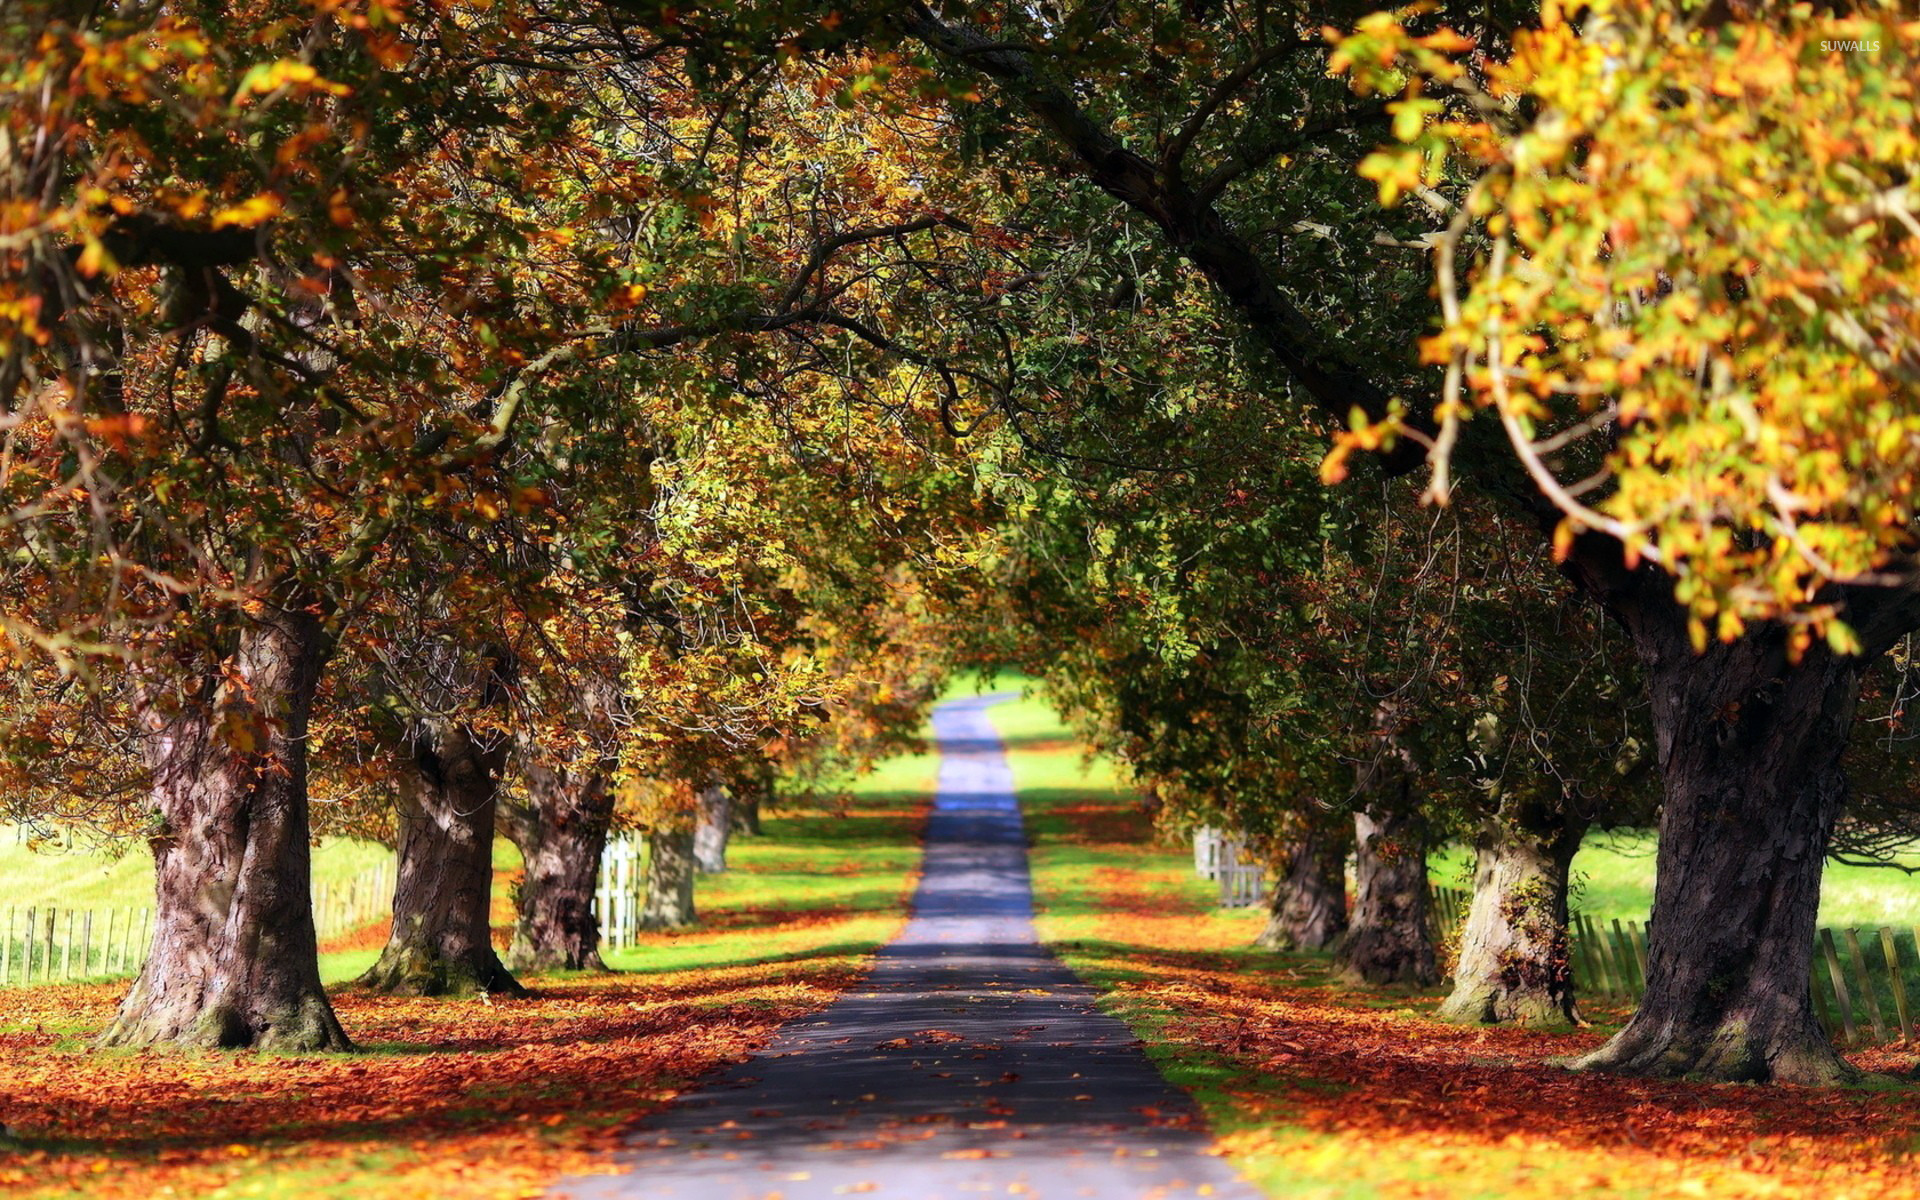 Path Between The Trees Wallpaper Nature Wallpapers 15630